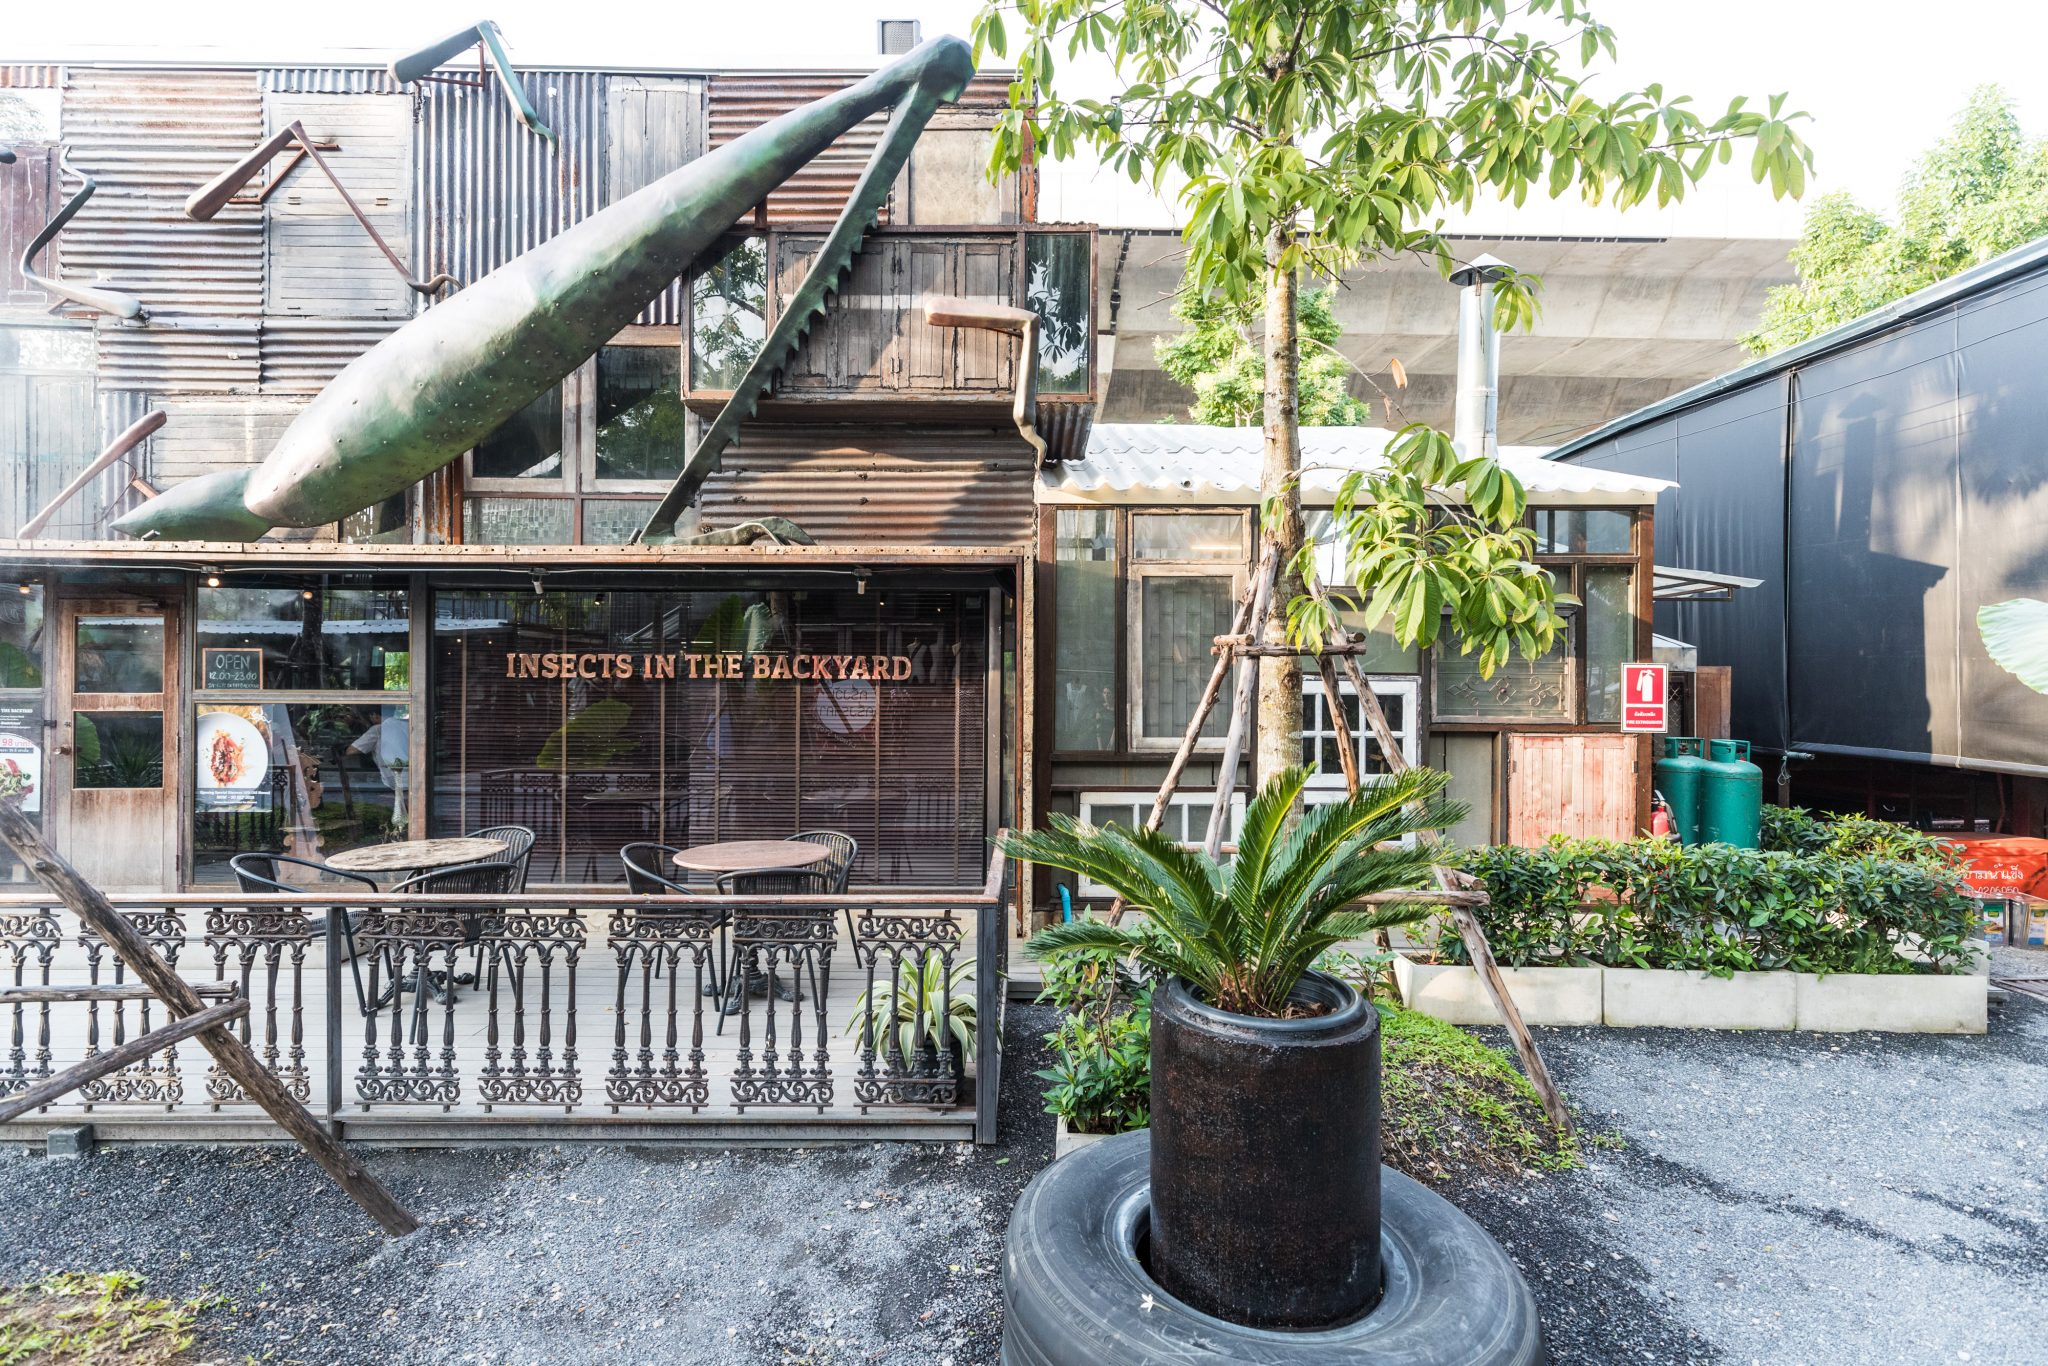 Insects in the Backyard opened in Bangkok's trendy Chang Chui market in July. Photo by Stan Lee/KCRW